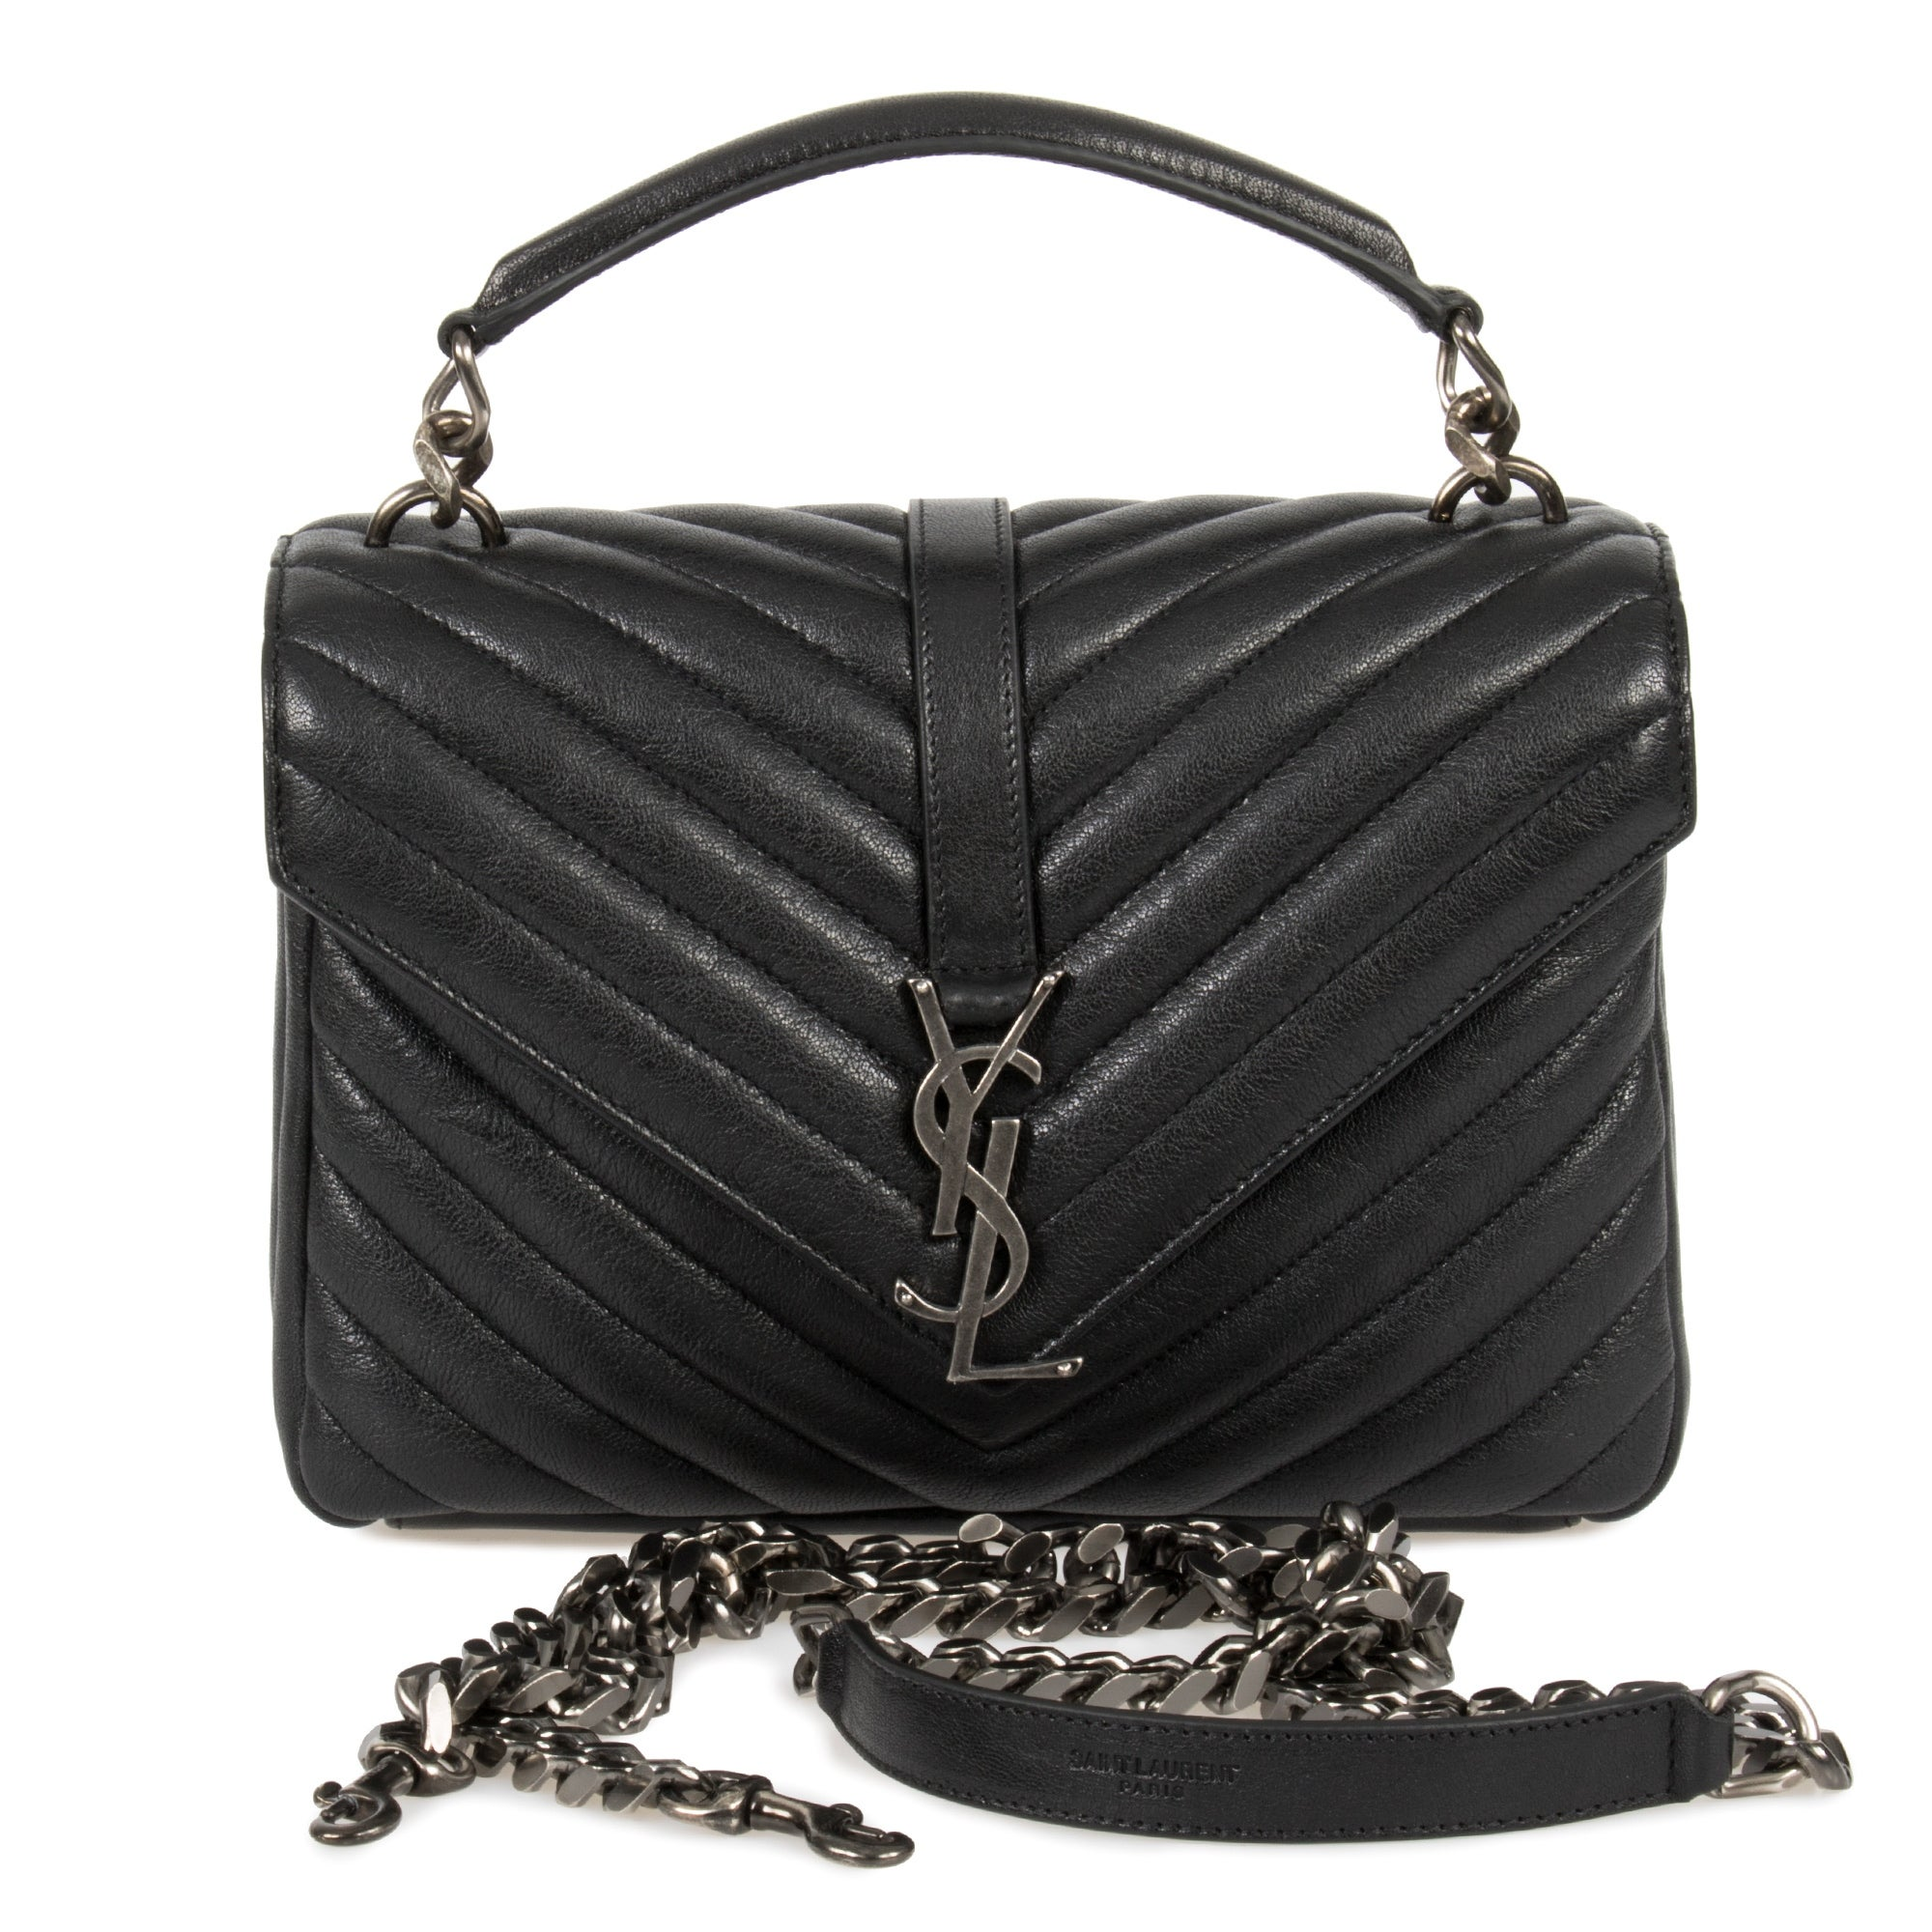 70a0f1dcab8 Shop Saint Laurent Classic Medium Monogram Black Matelasse Leather College  Bag - Free Shipping Today - Overstock - 23076884